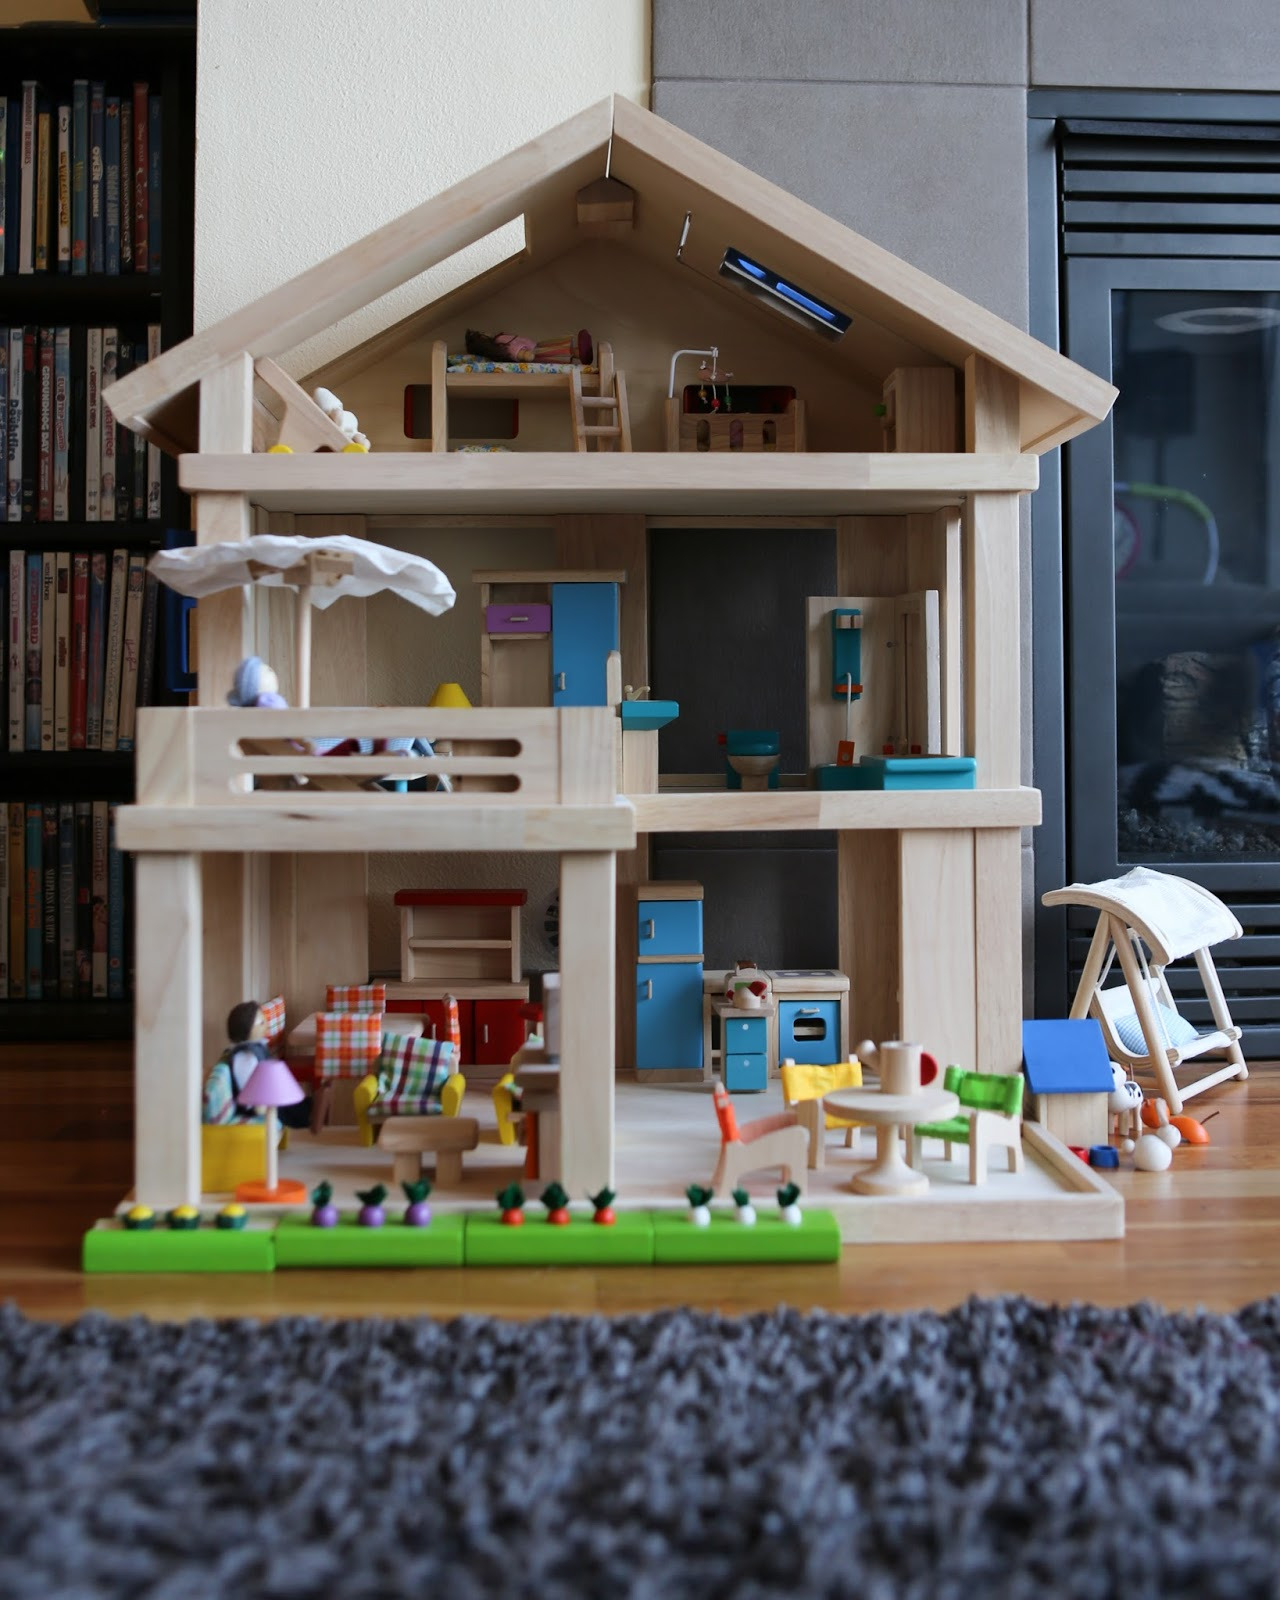 Plan toys Doll House Fresh Bazey Mama Product Review Plan toys Terrace Dollhouse